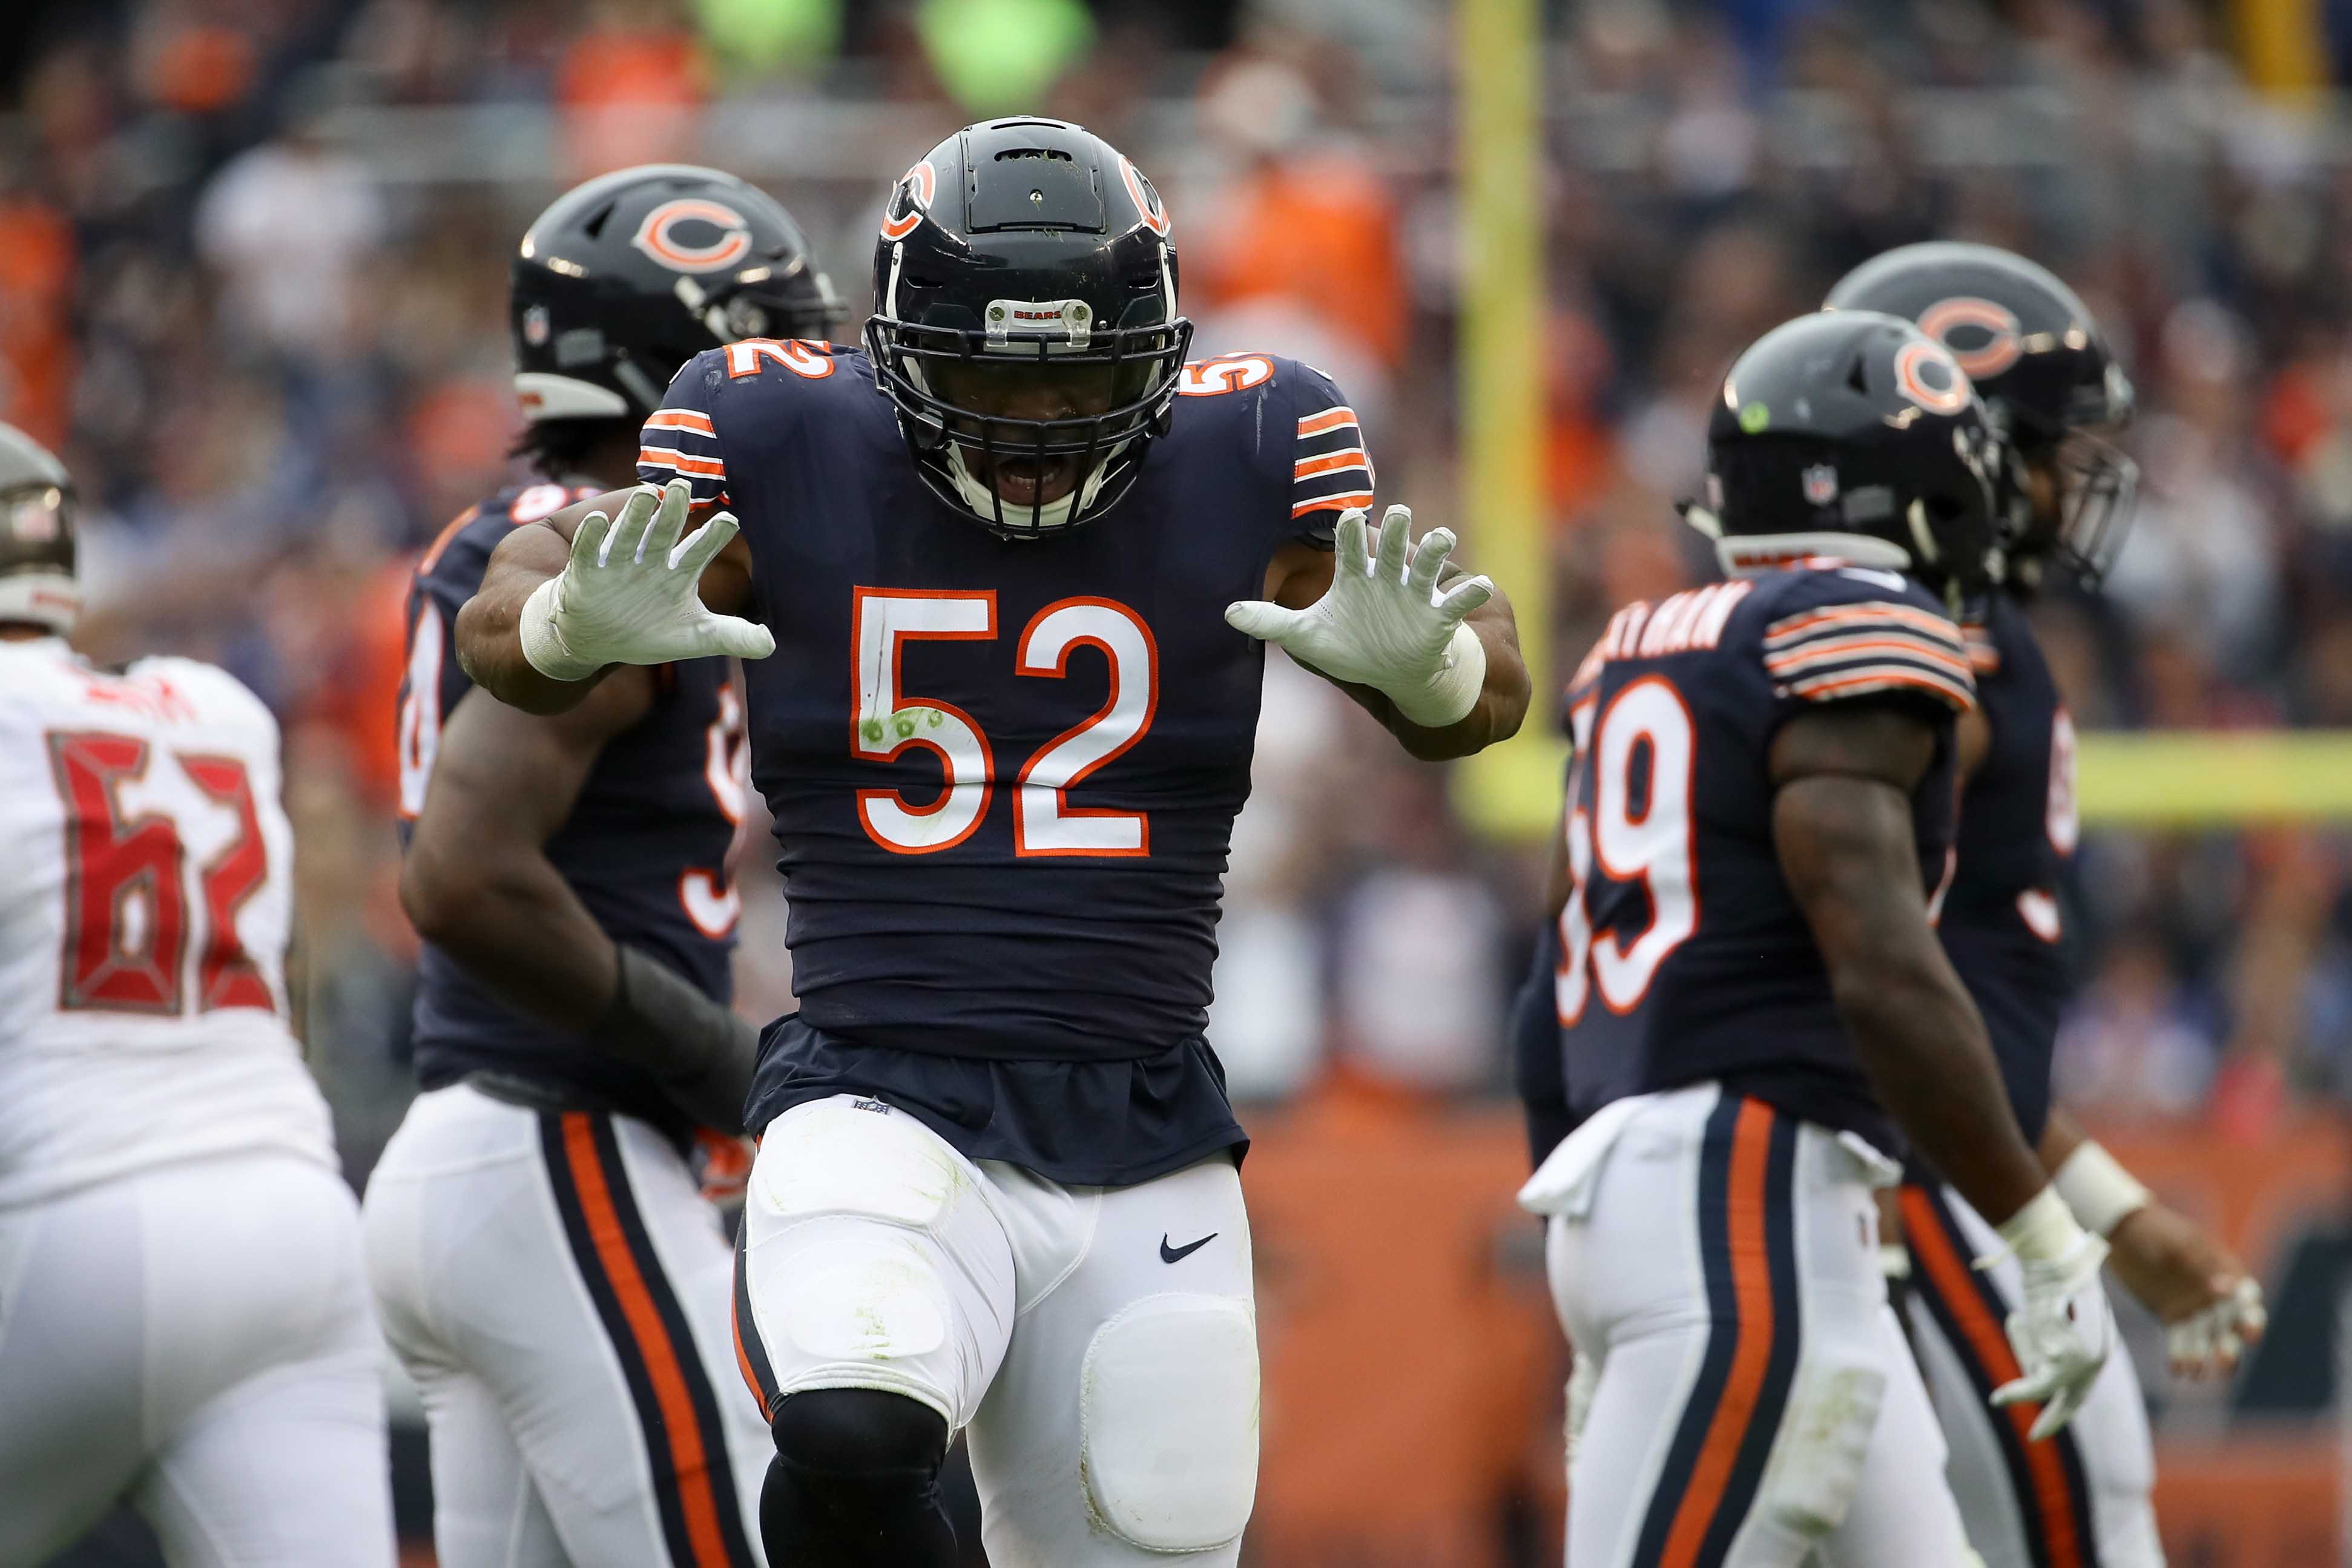 chicago bears uniforms 2020